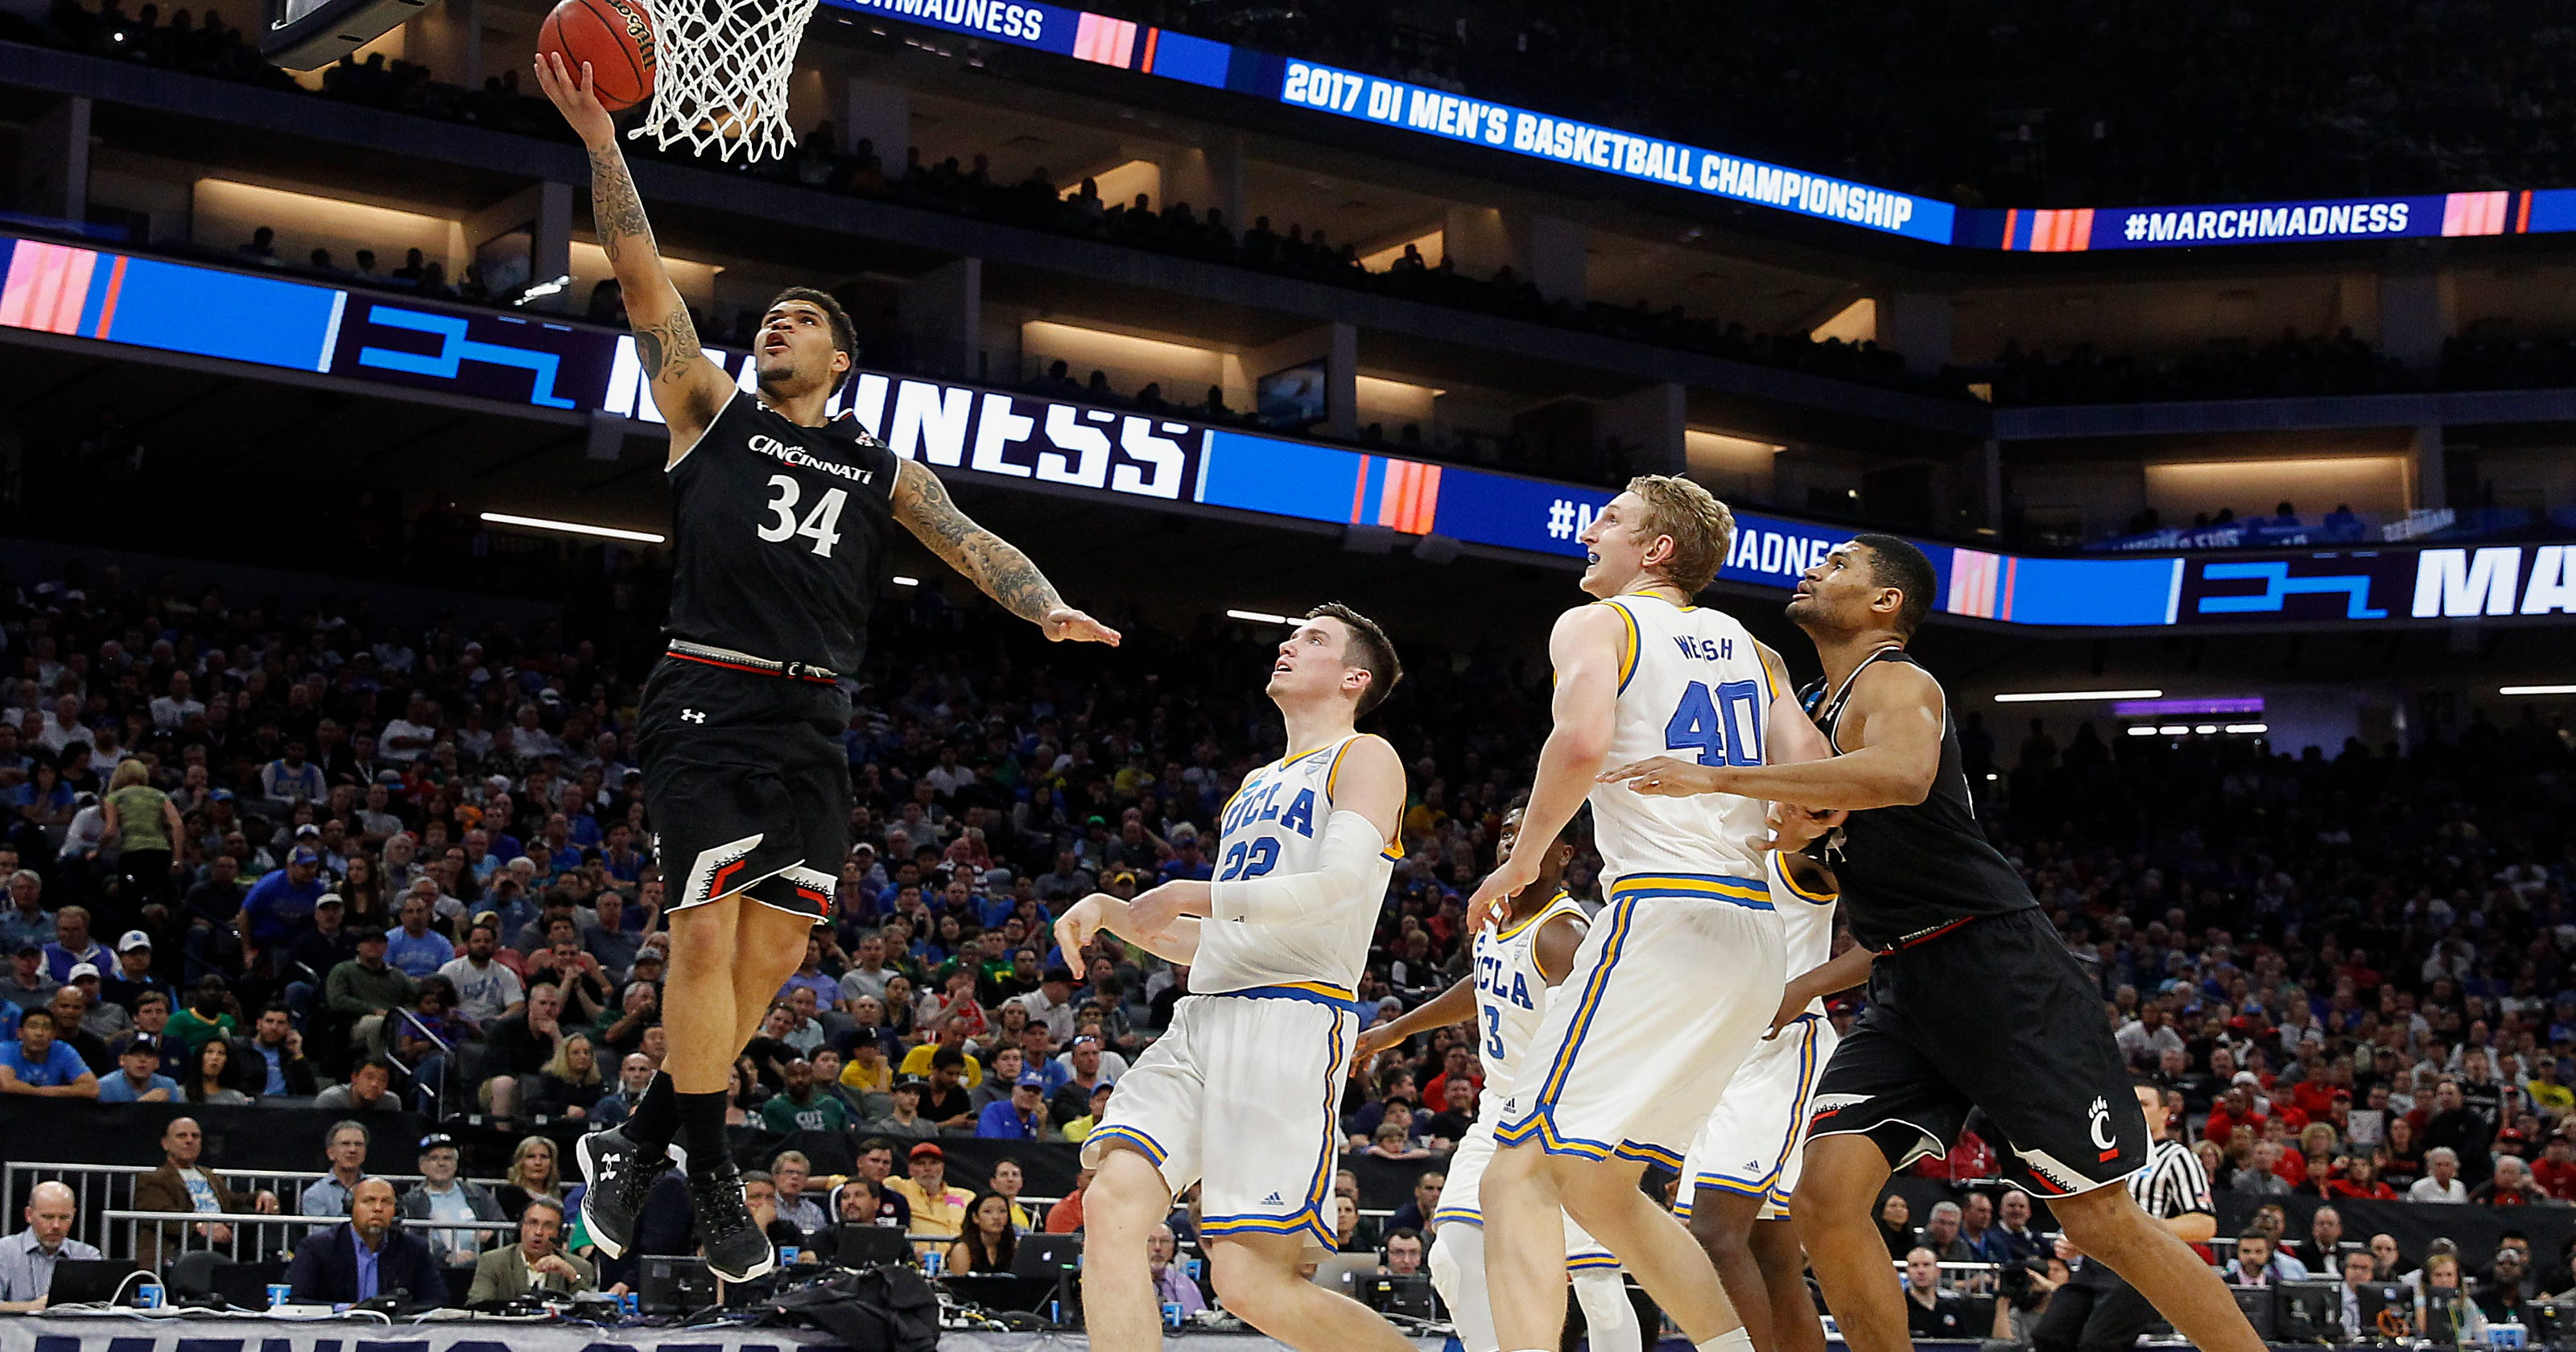 uc bearcats basketball game at ucla to air on cbs